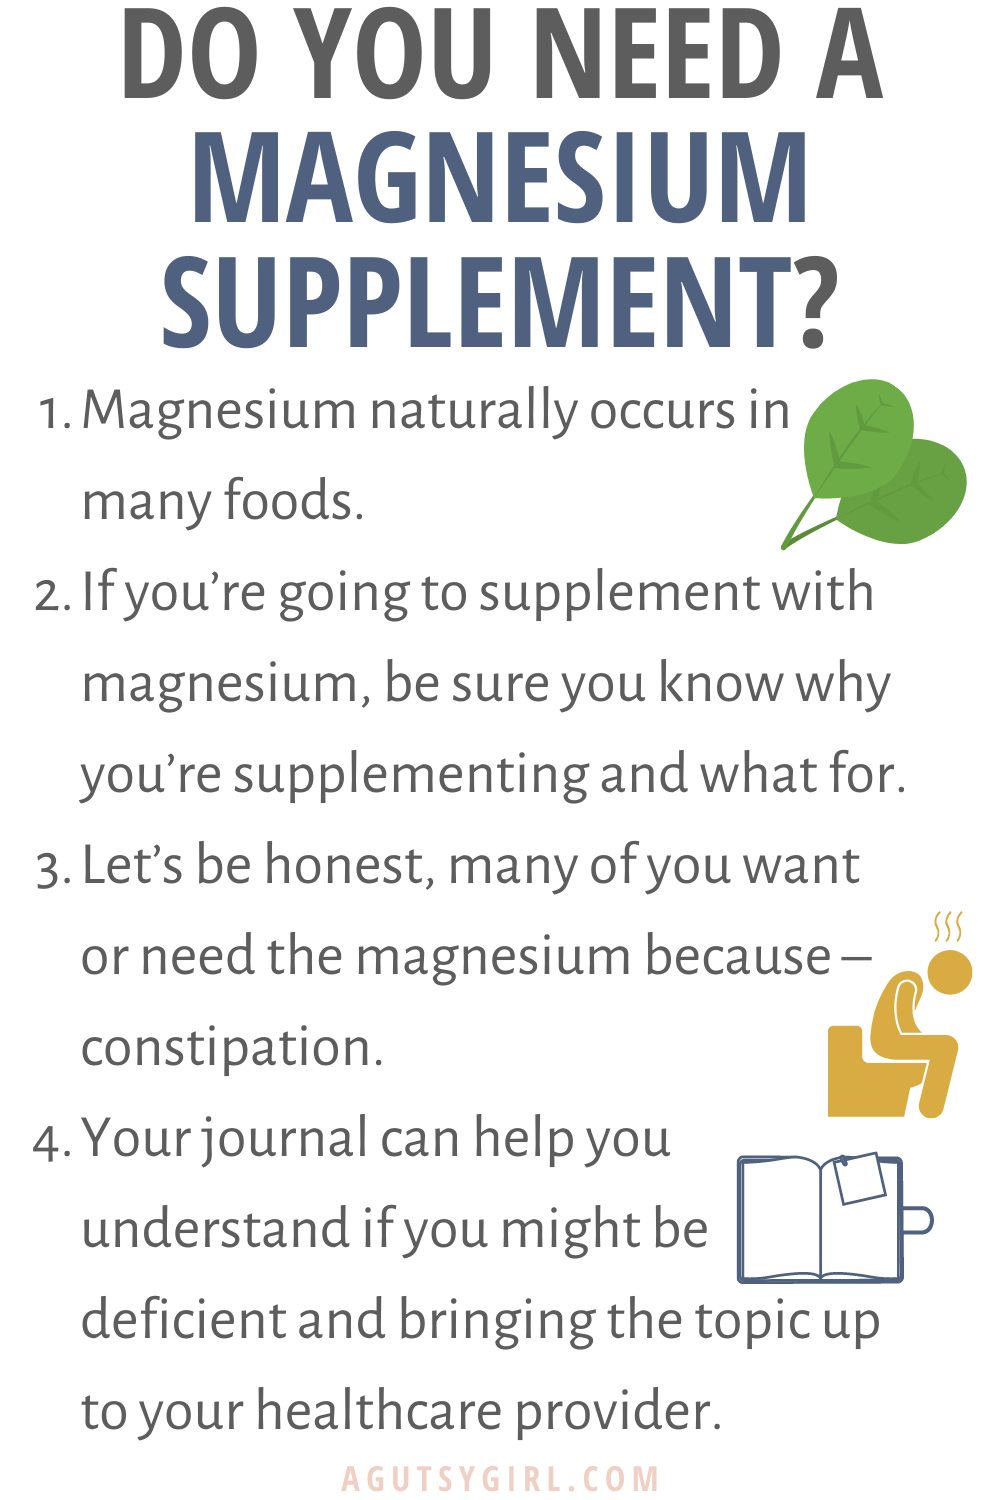 Do You Need a Magnesium Supplement? agutsygirl.com #magnesium #constipation #supplements #guthealth